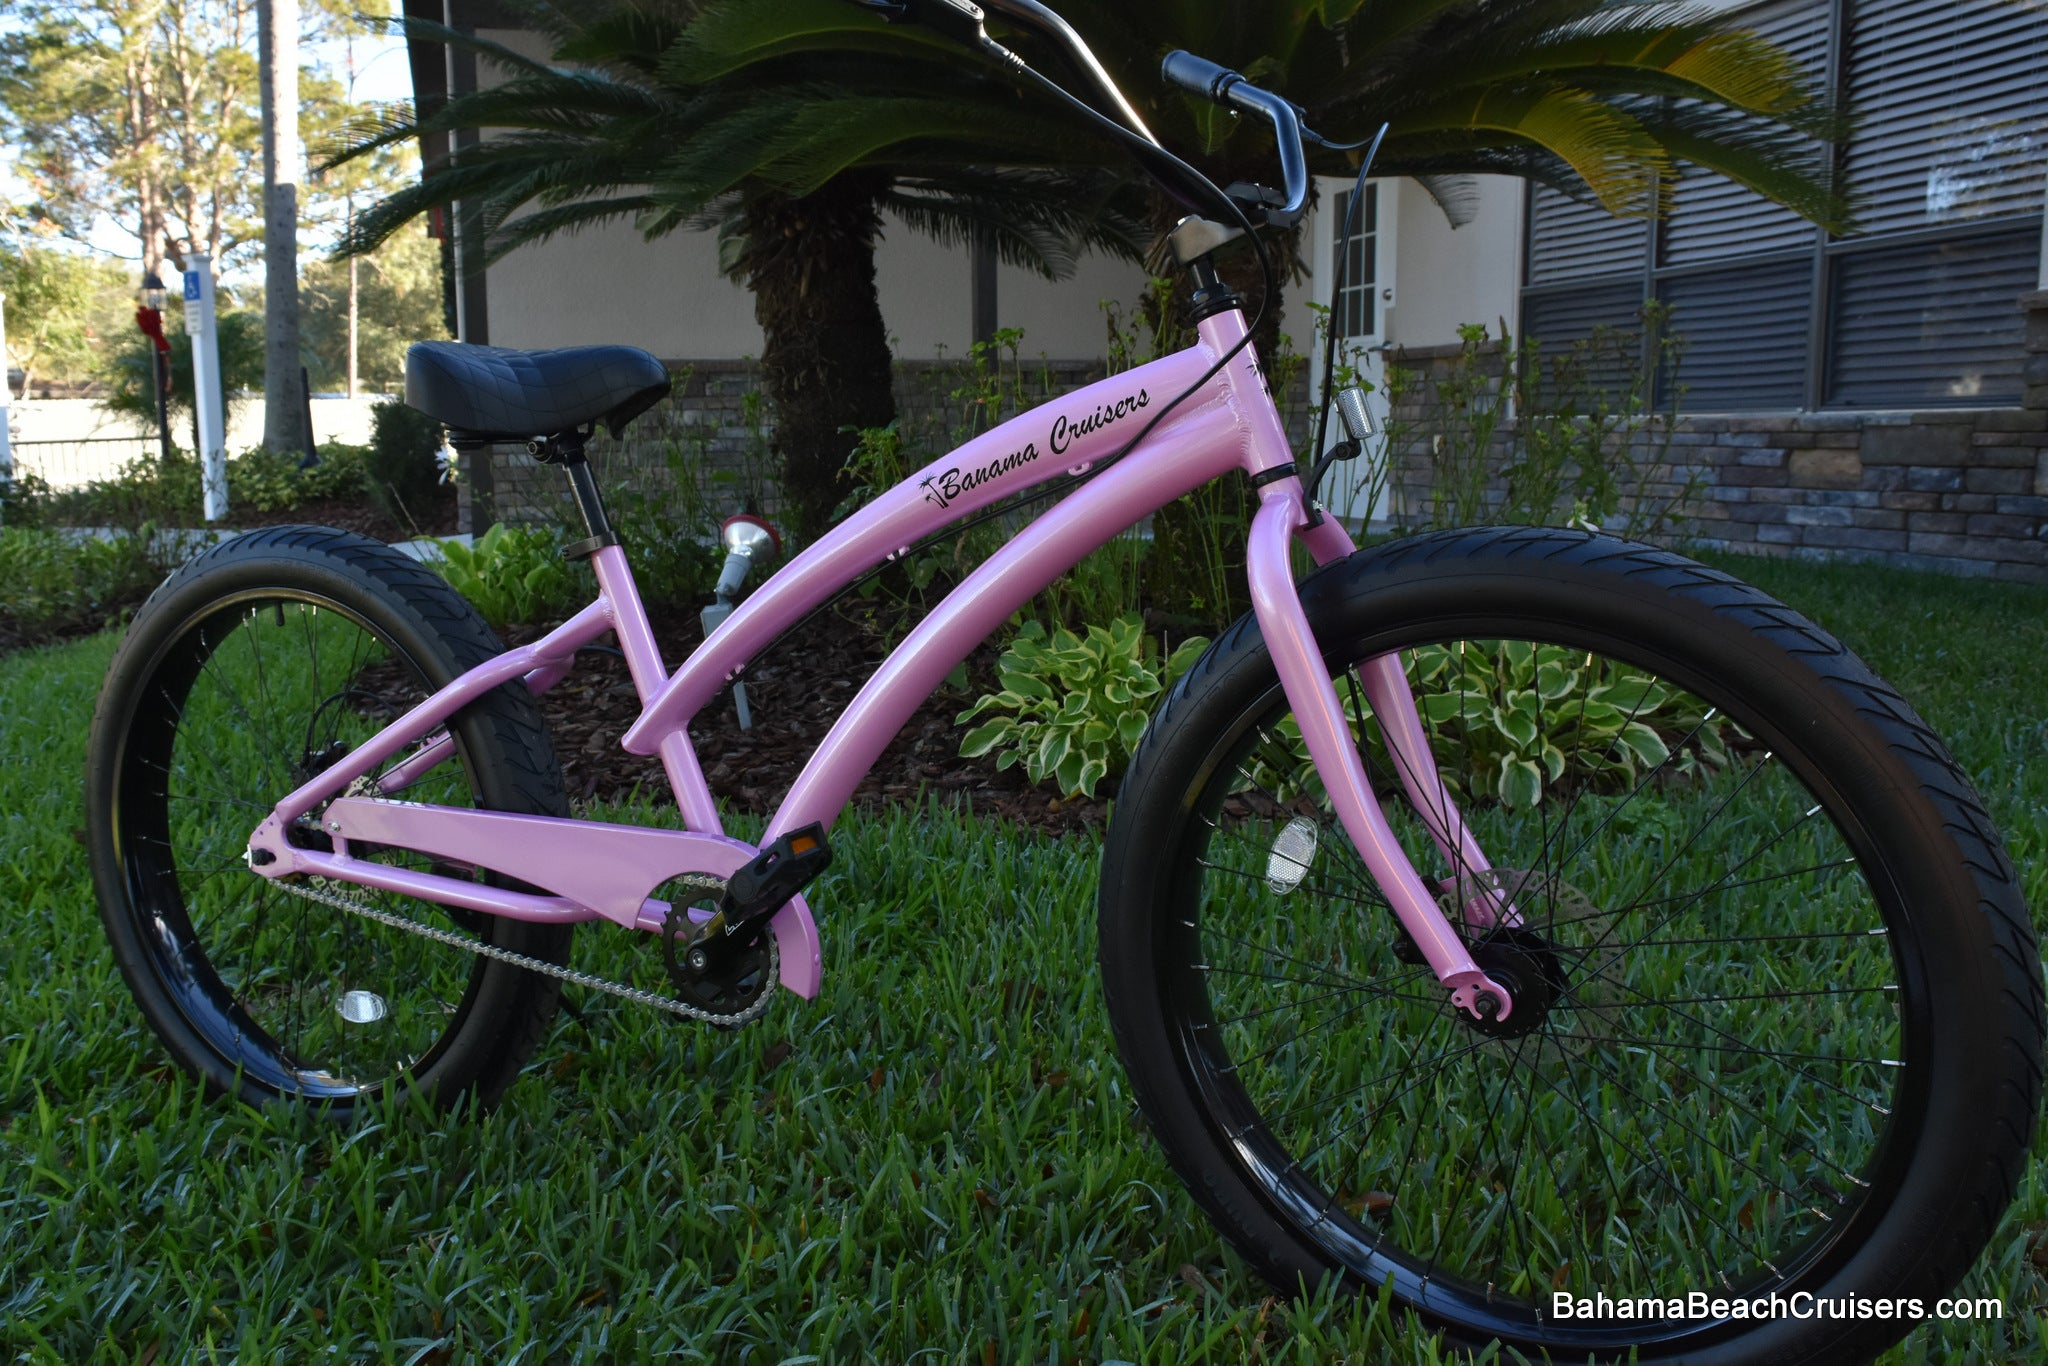 new-aluminum-fat-tire-beach-cruiser-wide-ride-3-0-fat-tire-cruisers fat tire beach cruiser bicycle, fat tire bikes, custom beach cruisers, fat tire cruisers, fat tire beach bikes for sale, fat tire beach cruiser bicycle, fat tire beach cruiser az, fat tire cruisers az, fat tire cruisers for sale, fat bike, wide ride 3.0, fat tire bicycle, beach cruiser, quality bicycles, extended frame Mens and Ladies Beach Cruisers, beach cruiser bike